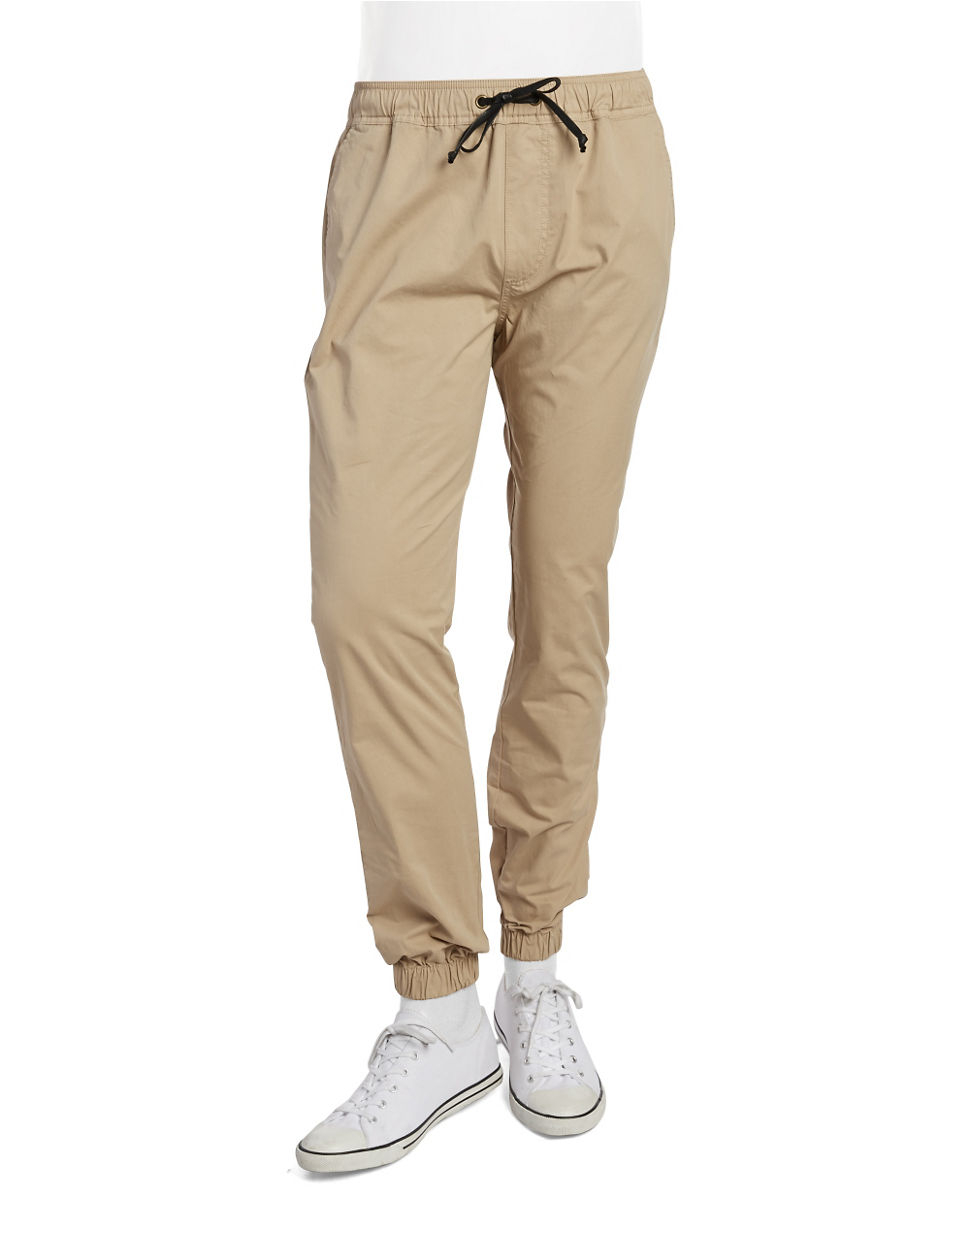 Mens Drawstring Khaki Pants 51